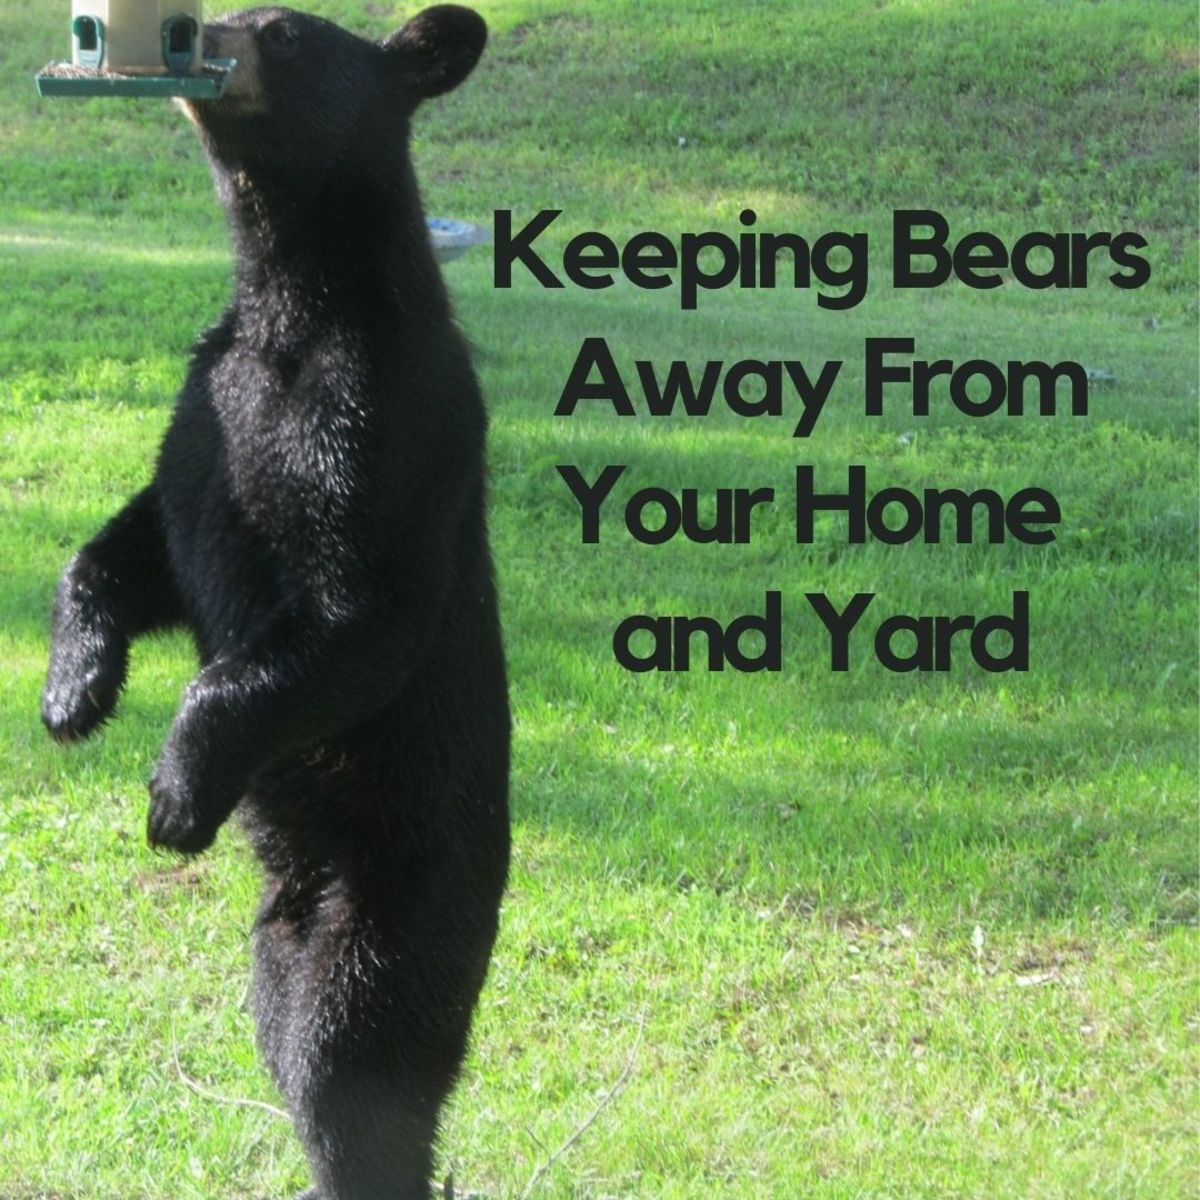 Tips and tricks for keeping bears away from your house and yard